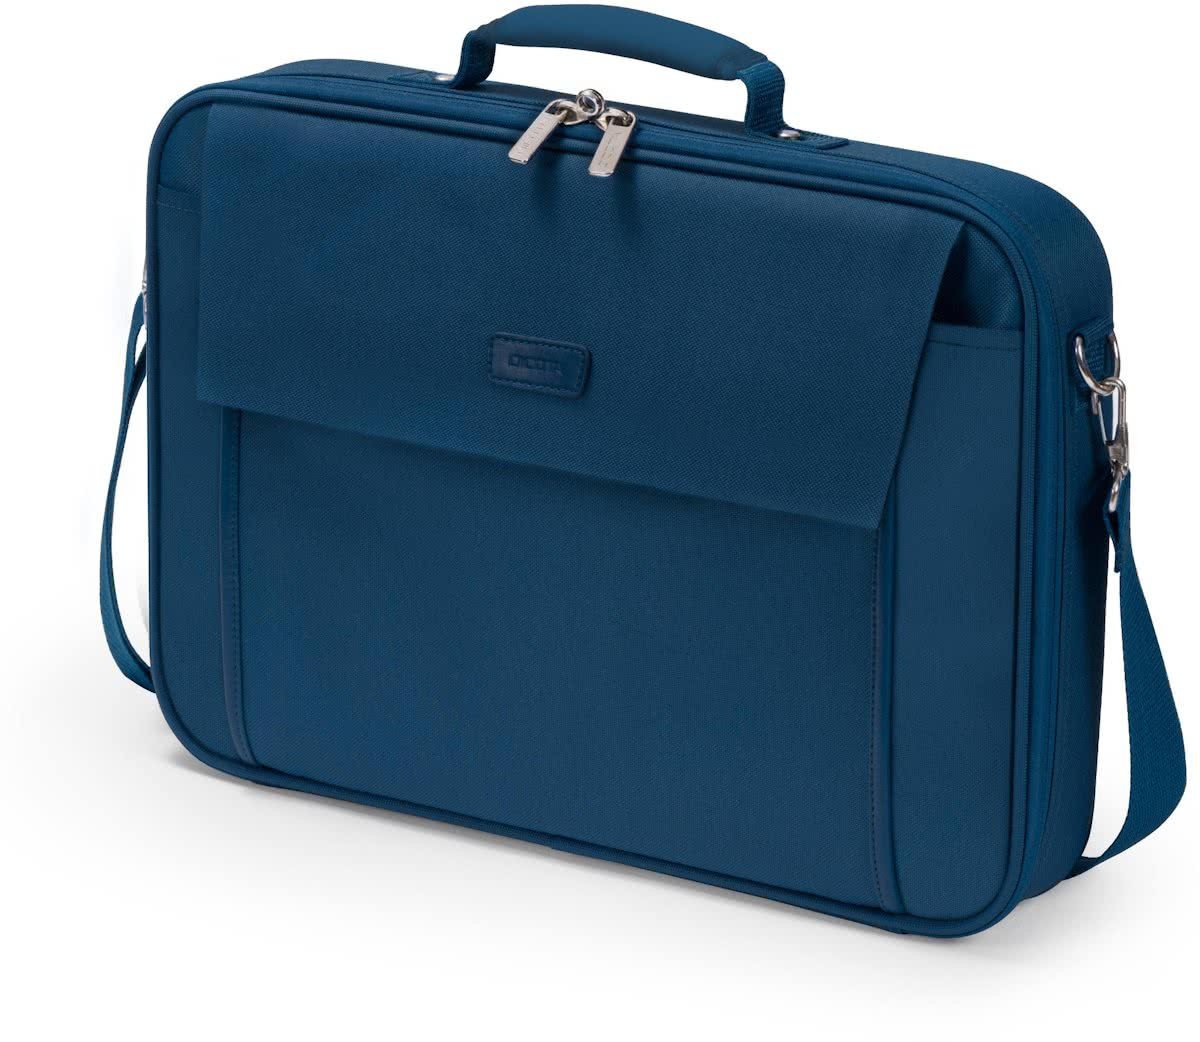 Dicota Multi BASE 15.6 inch - Laptoptas / Blauw